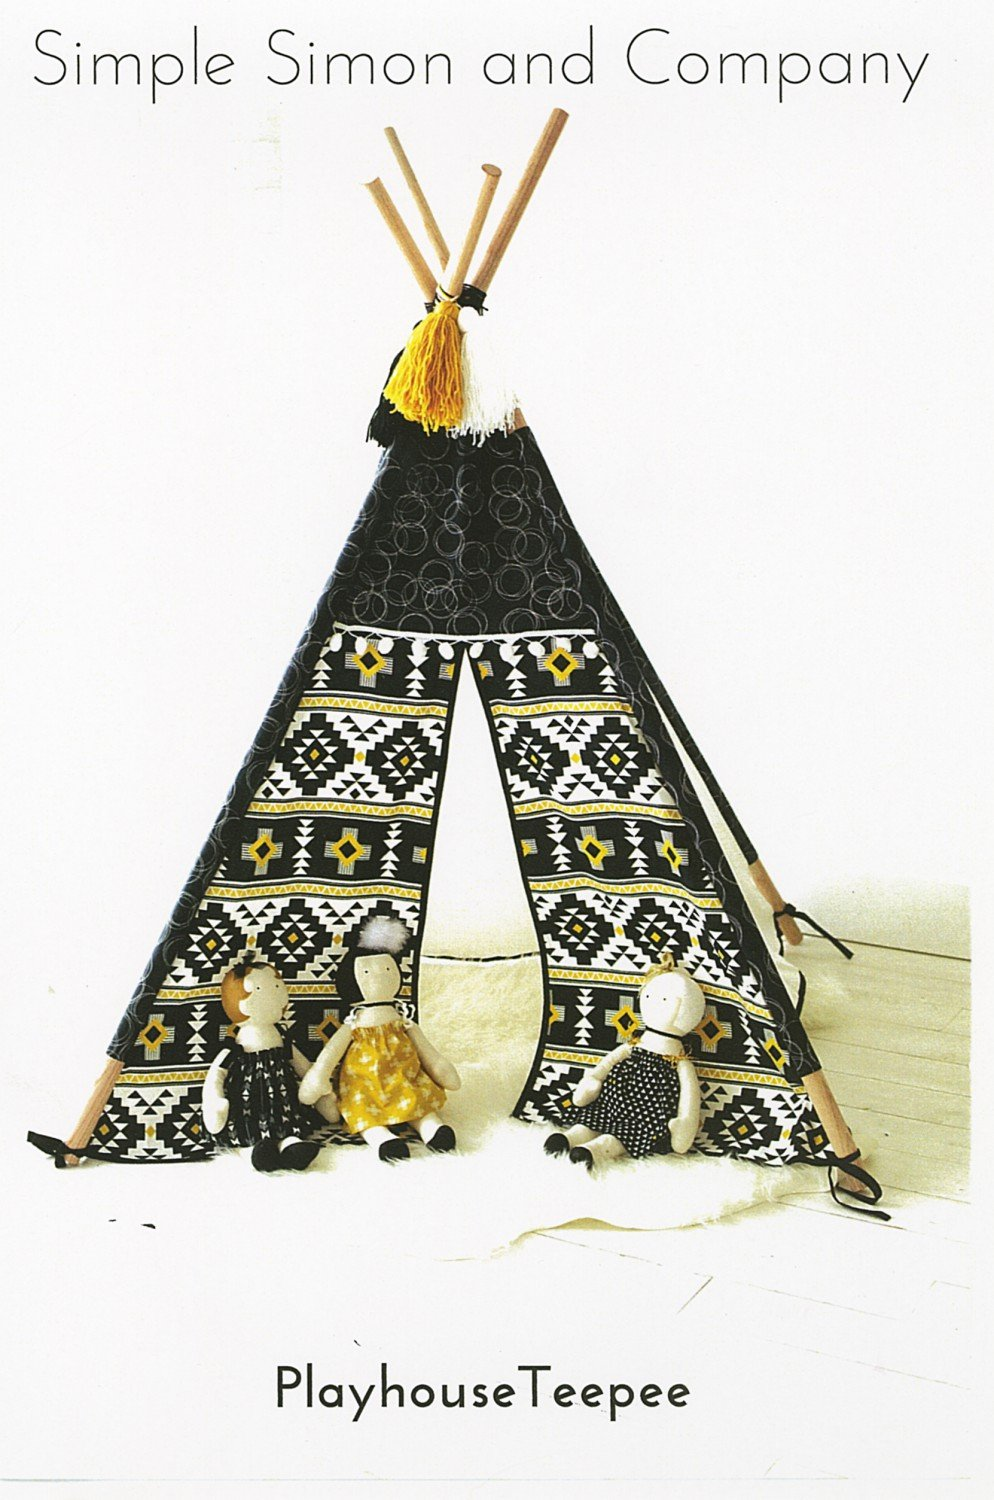 Playhouse Teepee